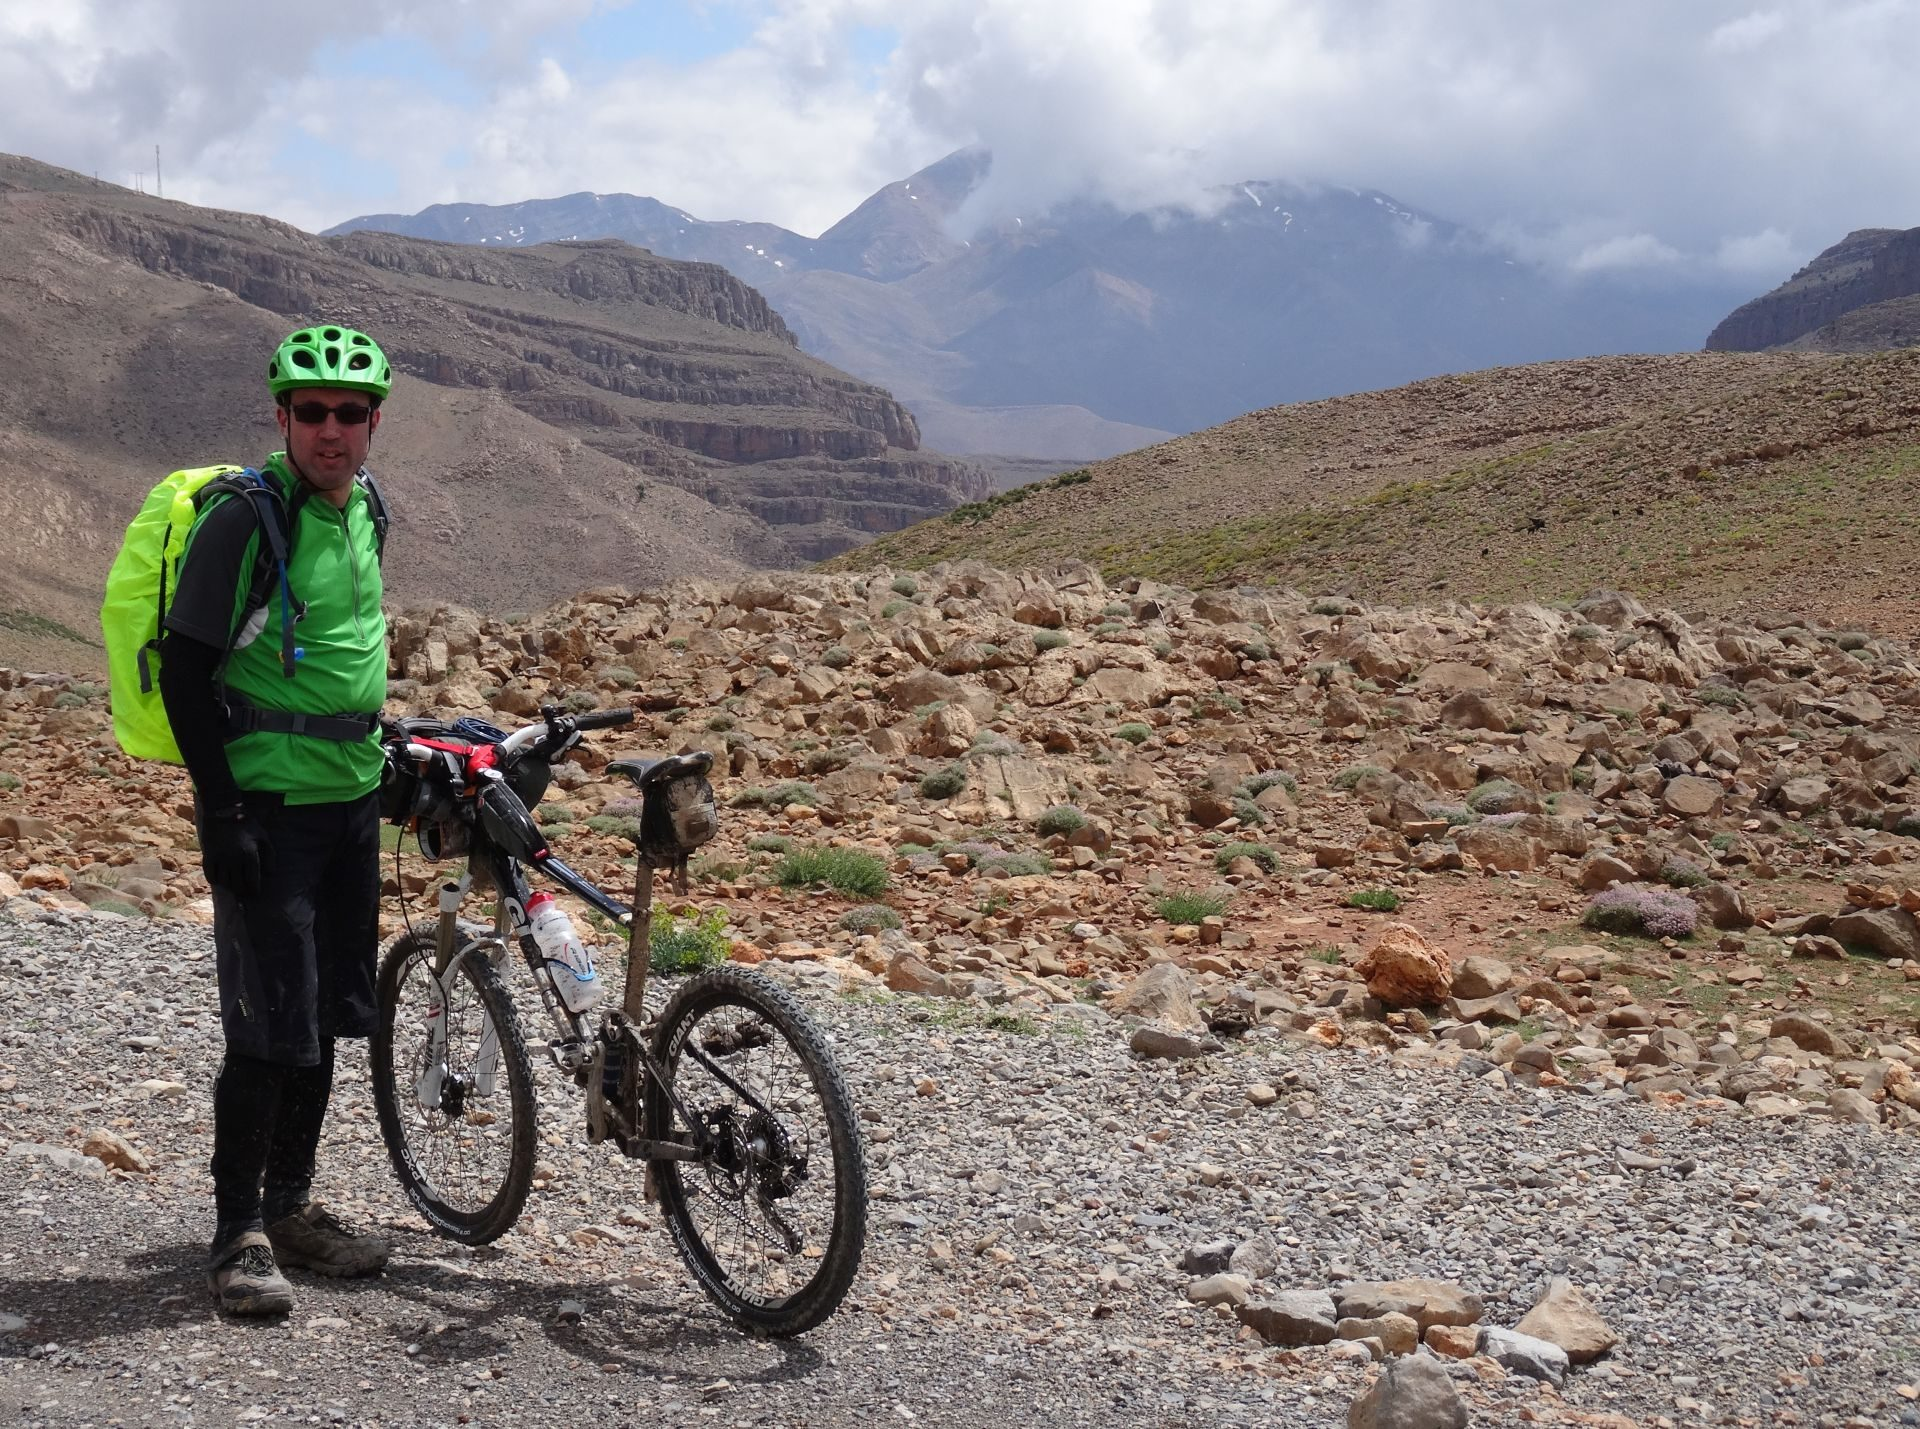 Day 1 - Mountain (Bike) Man, Steve. On the climb up the Tizi-n-Ouanergui pass (8,238 ft), before dropping into Anergui. Jbel Leqroun in cloud, on horizon. © Steve Woodward